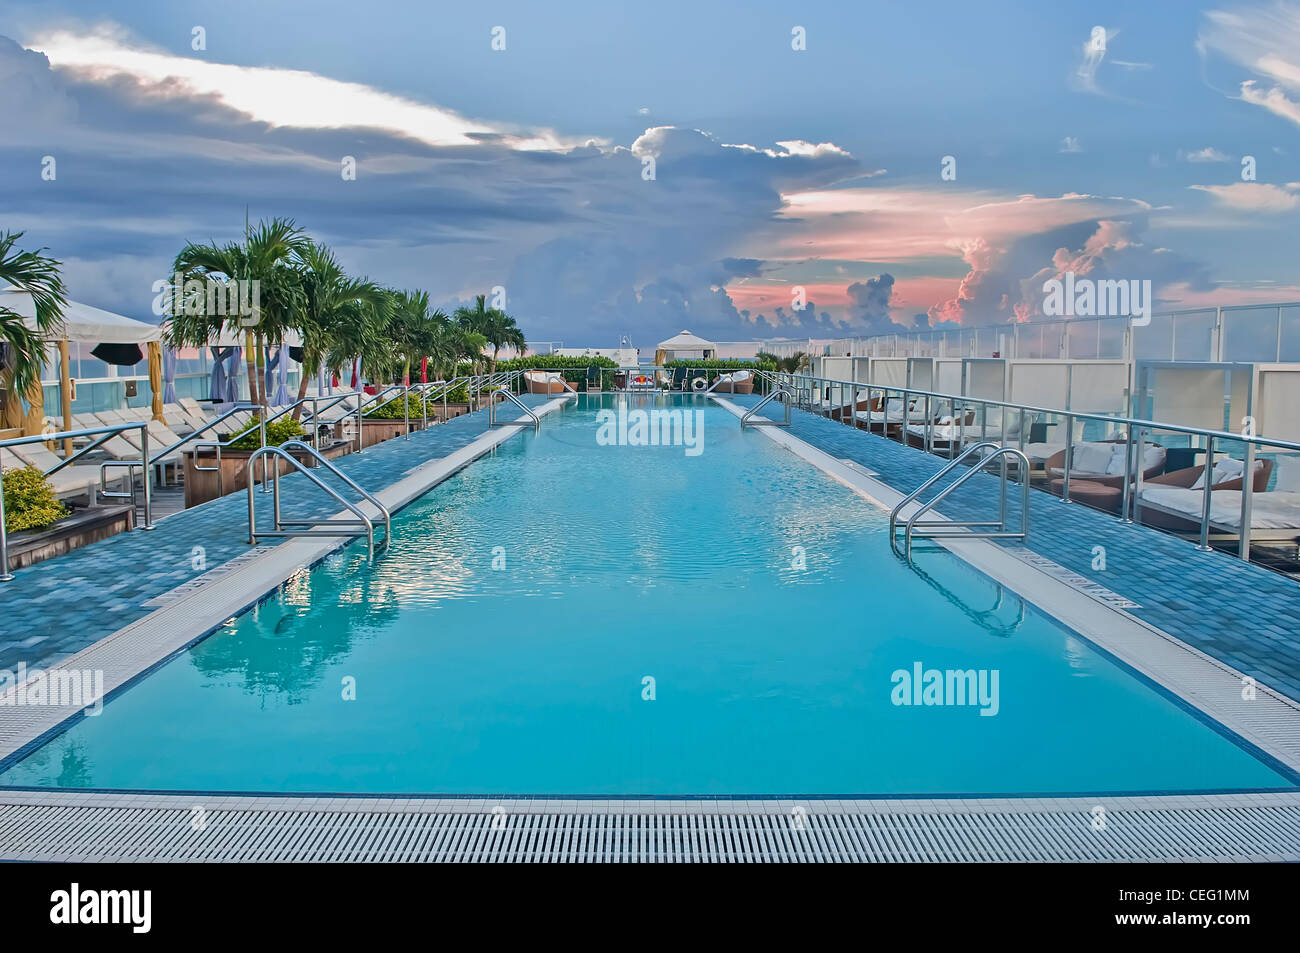 perry hotel south beach roof top pool stock image